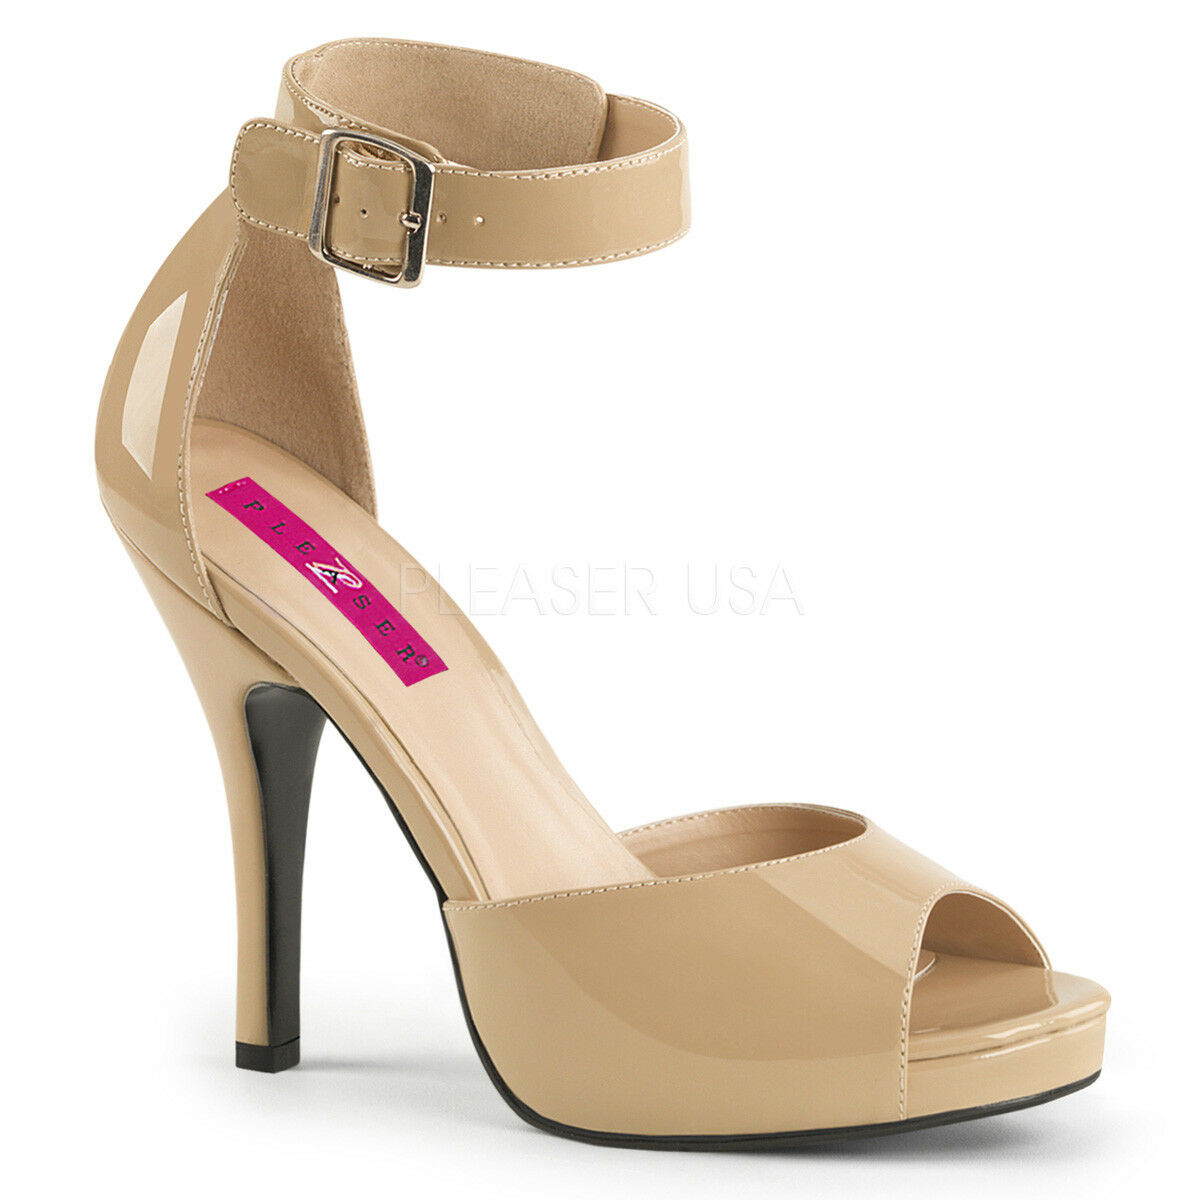 PLEASER PINK LABEL EVE-02 CREAM PATENT ANKLE STRAP HIGH HEEL SANDALS Schuhe